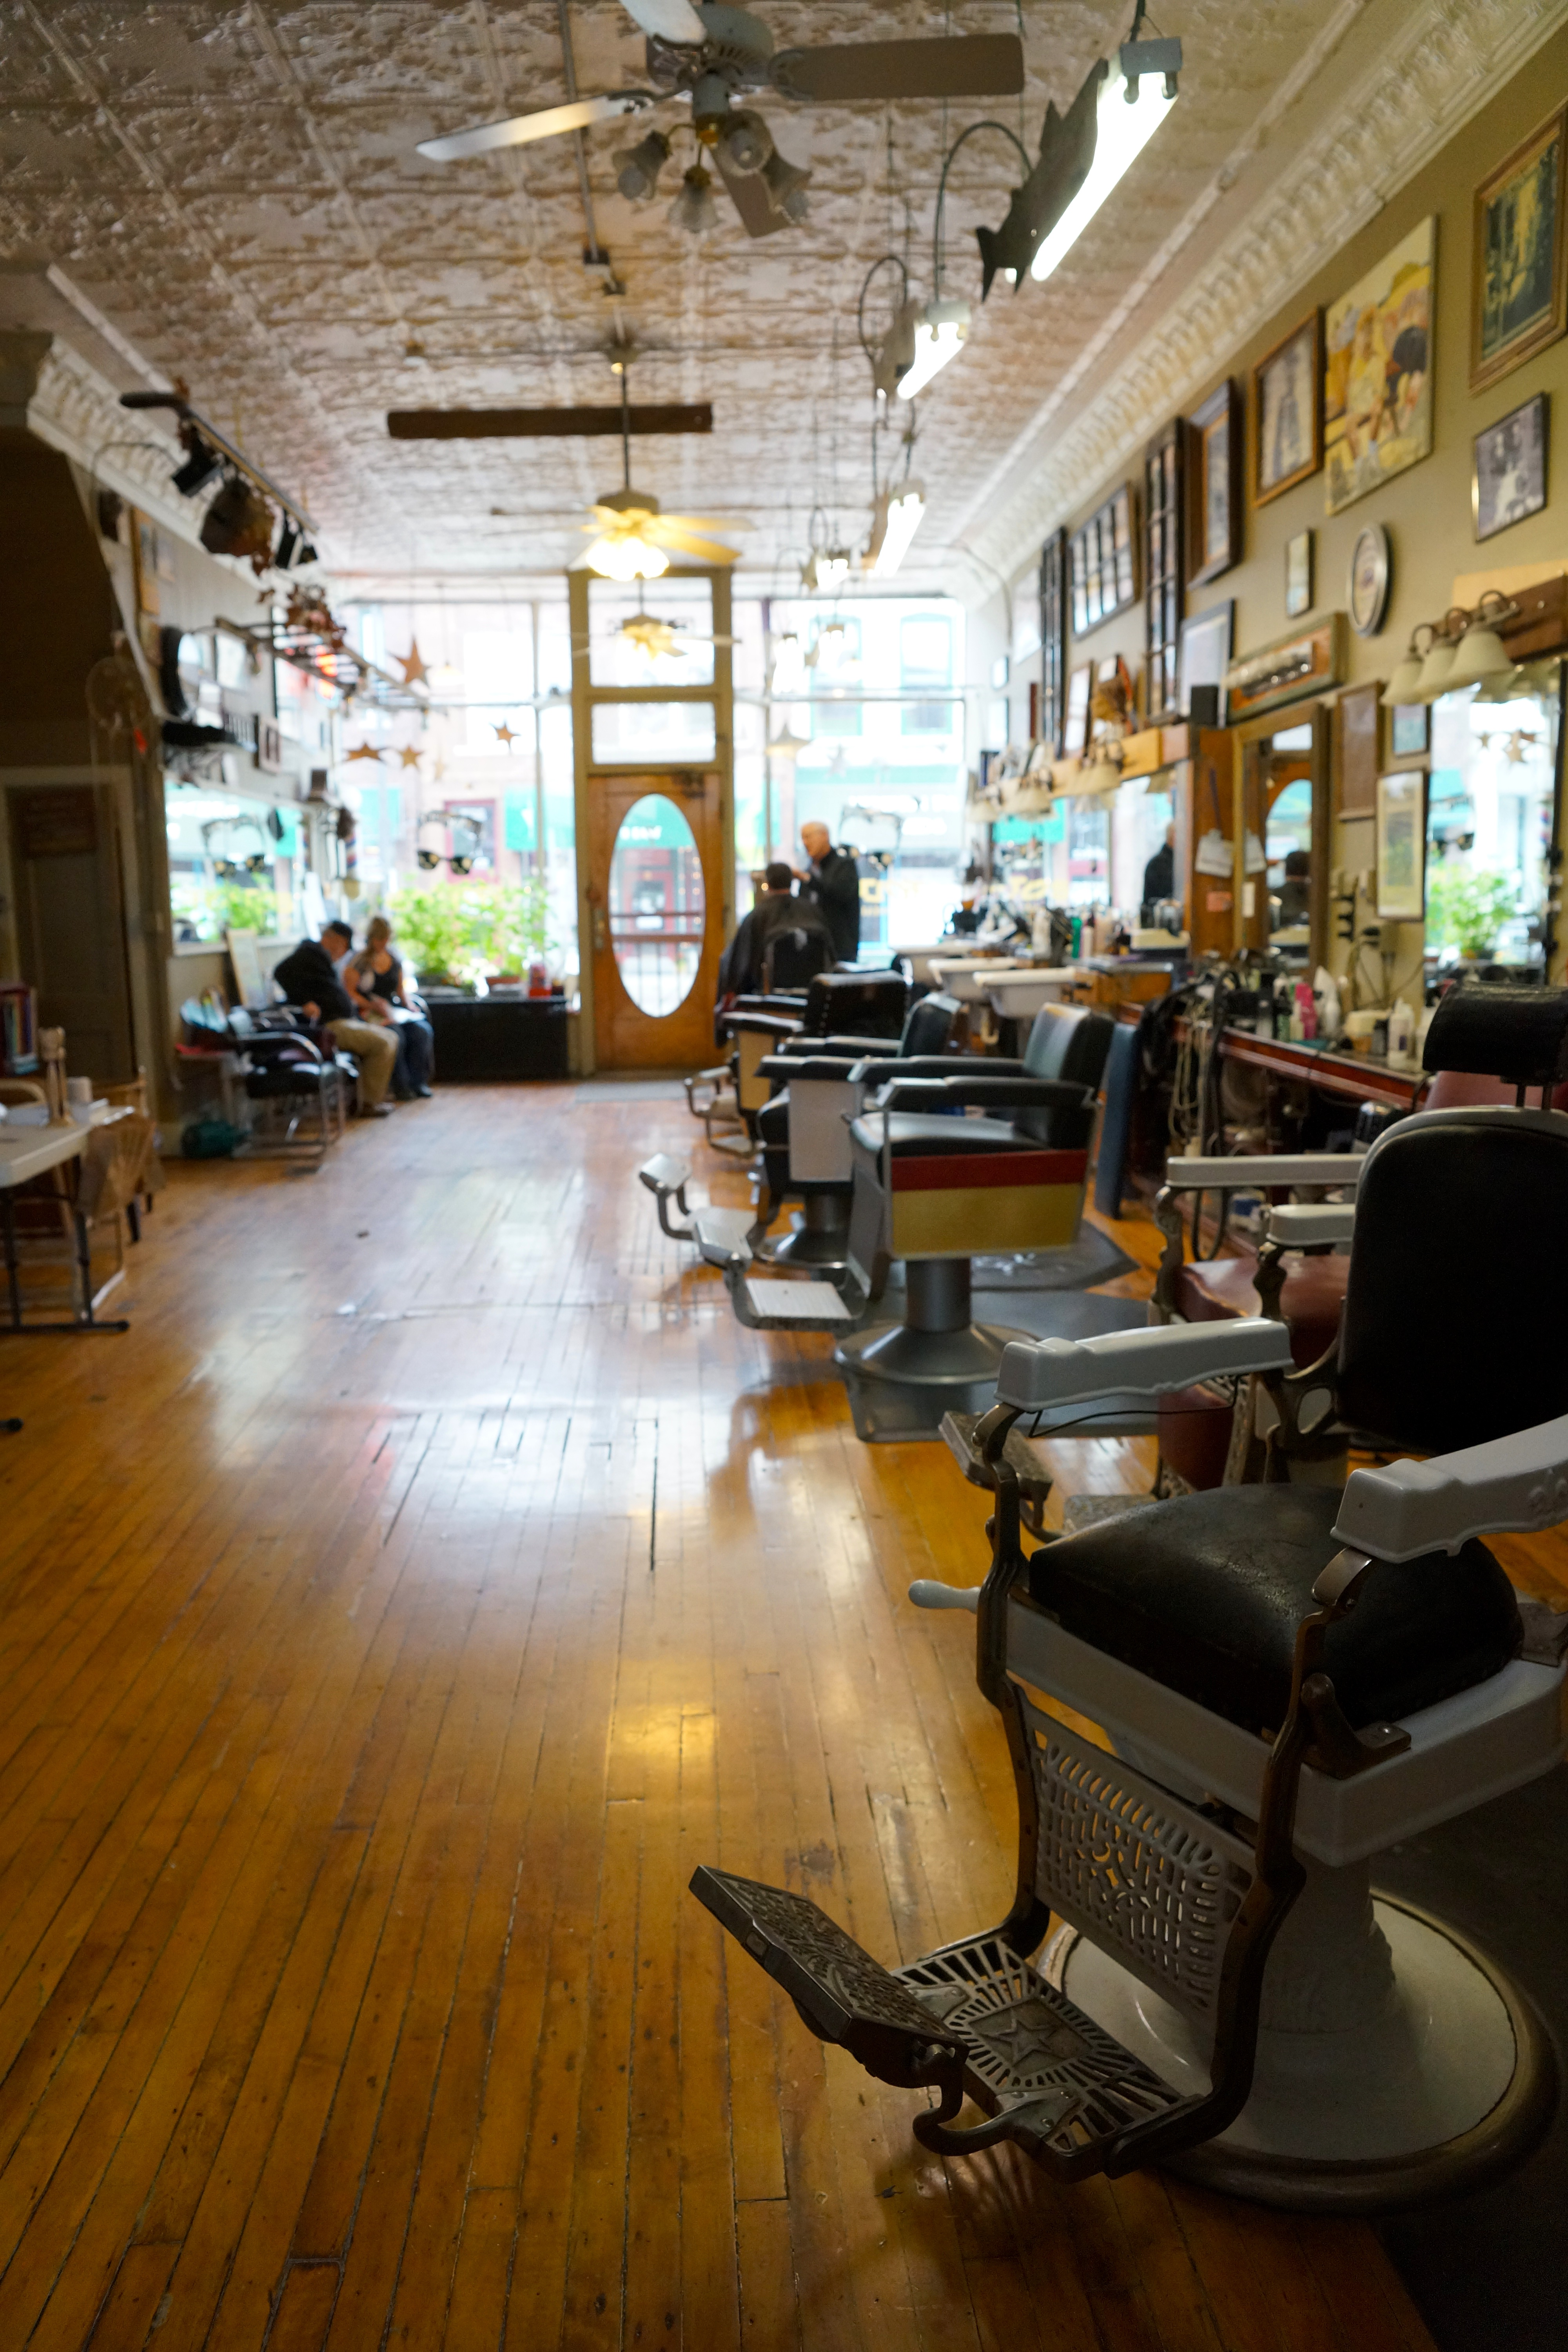 Interior barbershop lifestyle photo